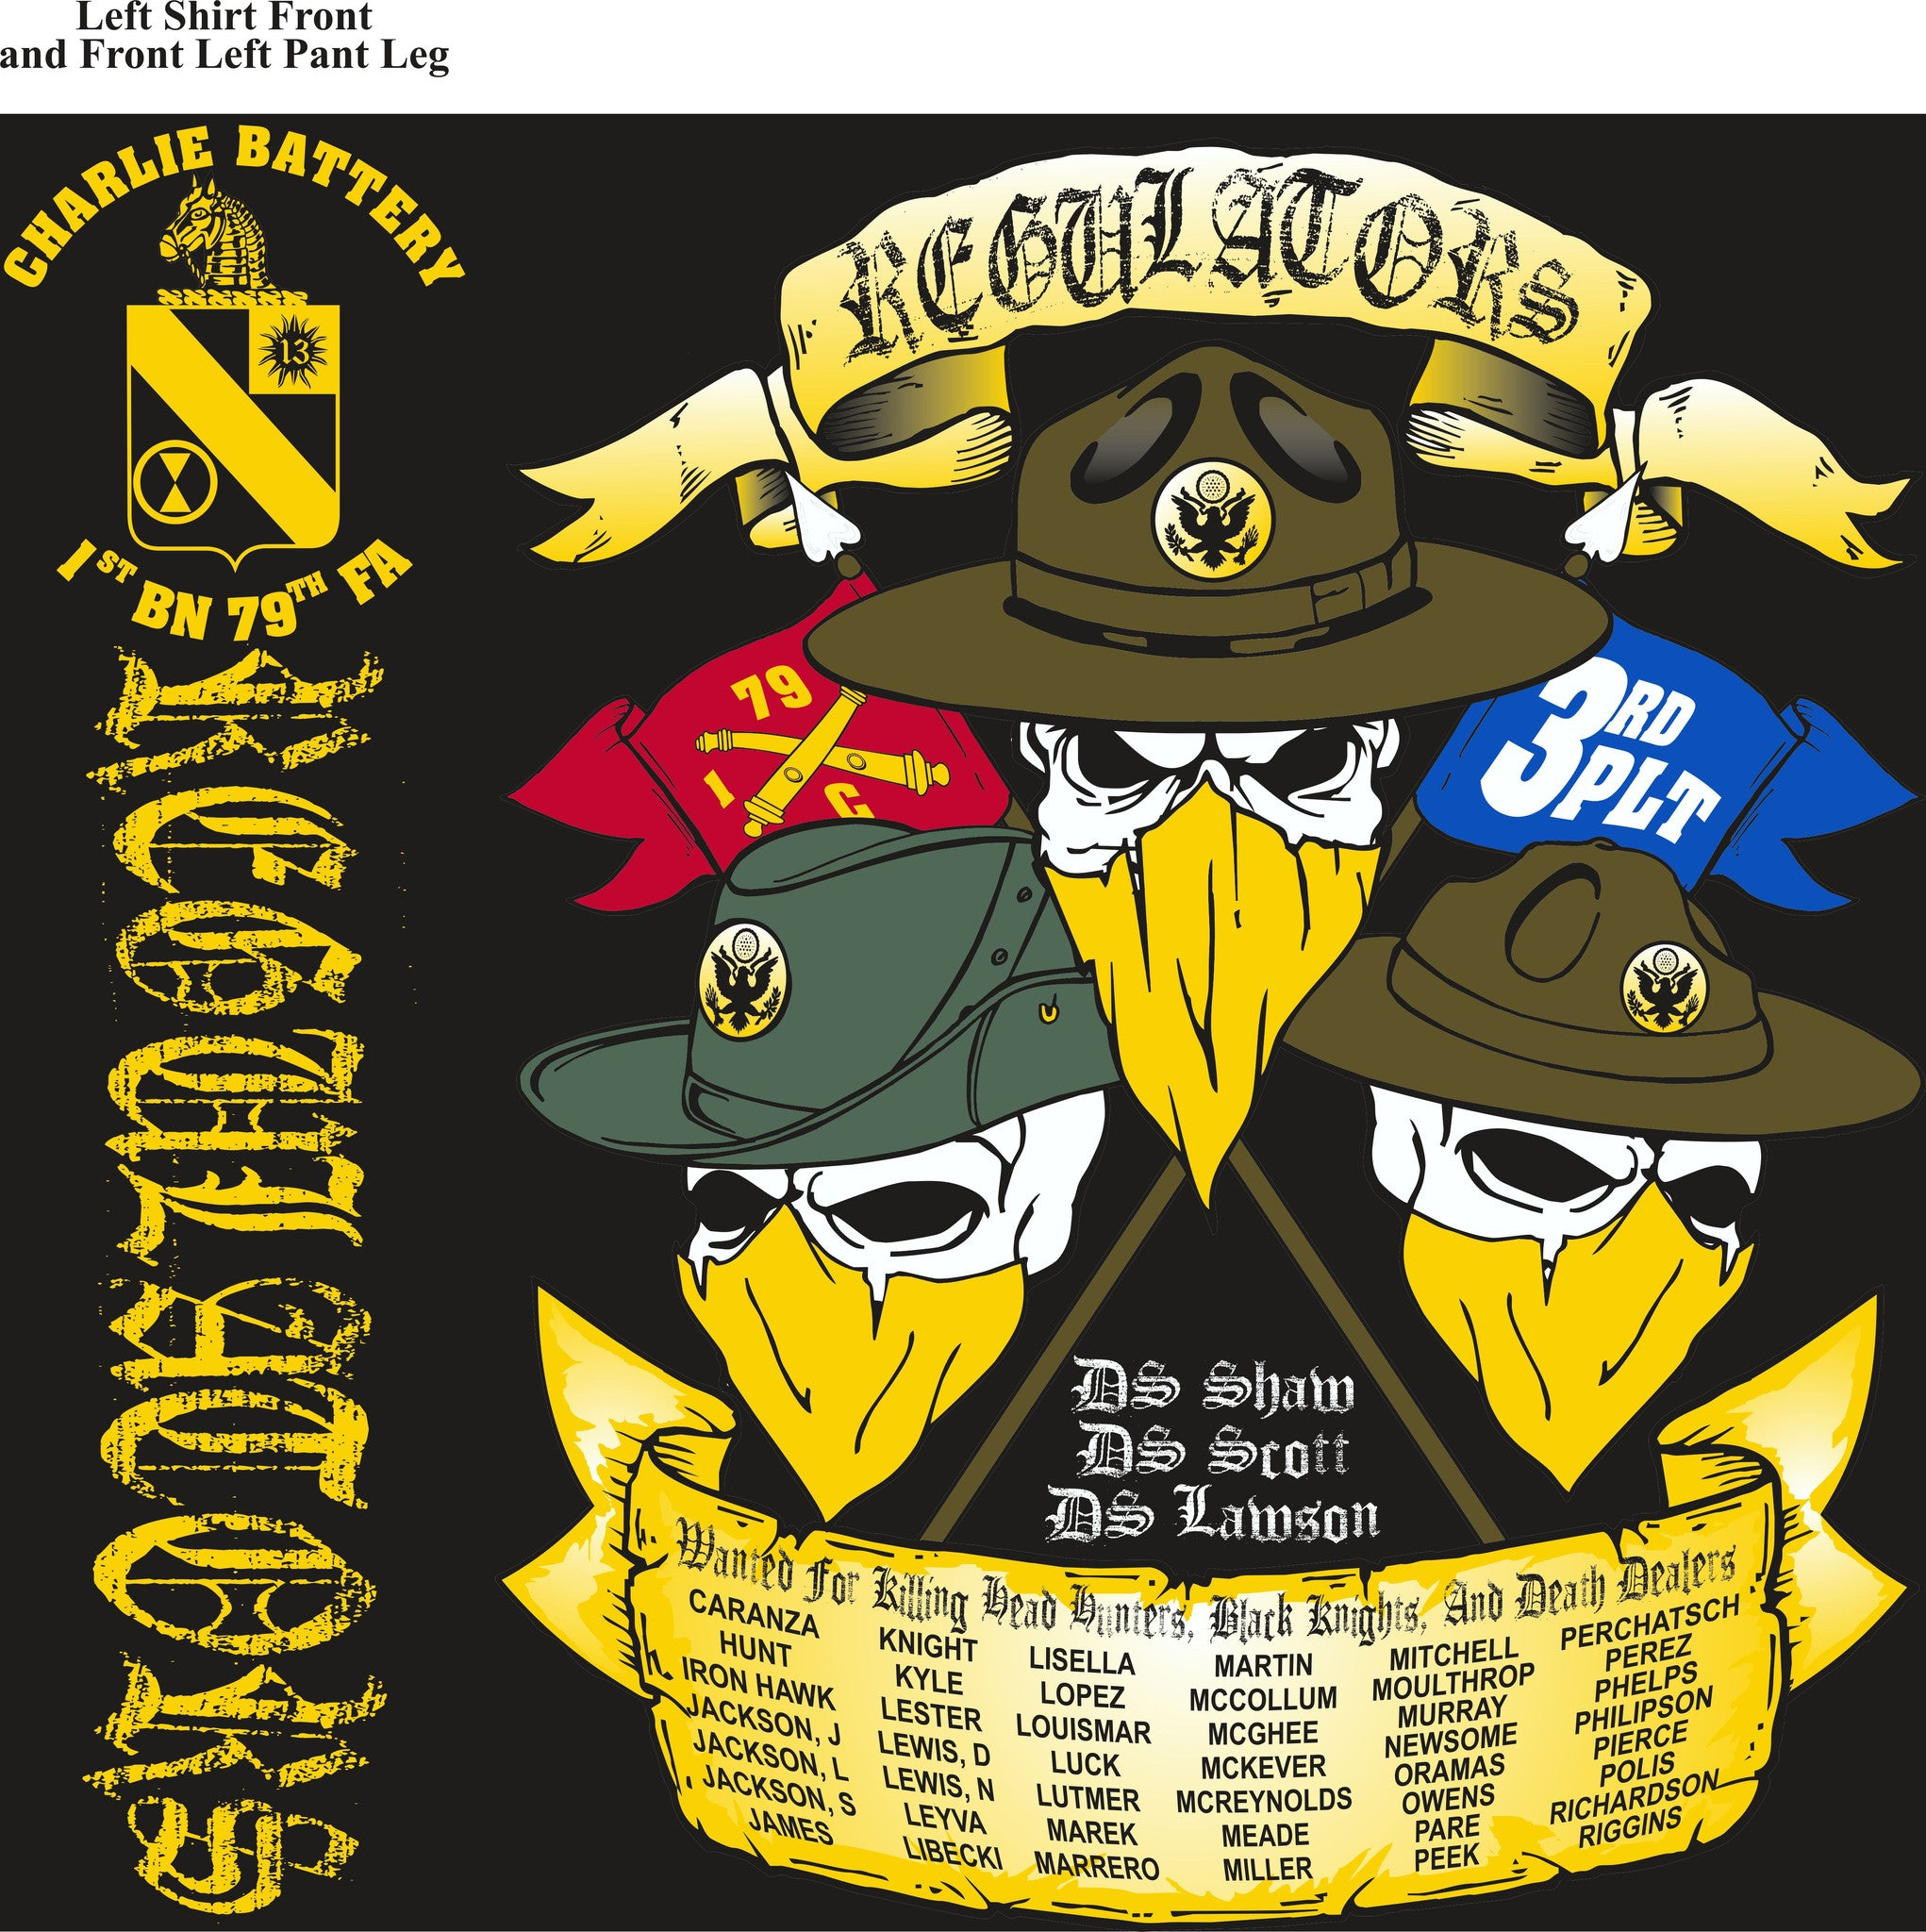 Platoon Shirts CHARLIE 1st 79th REGULATORS APR 2015